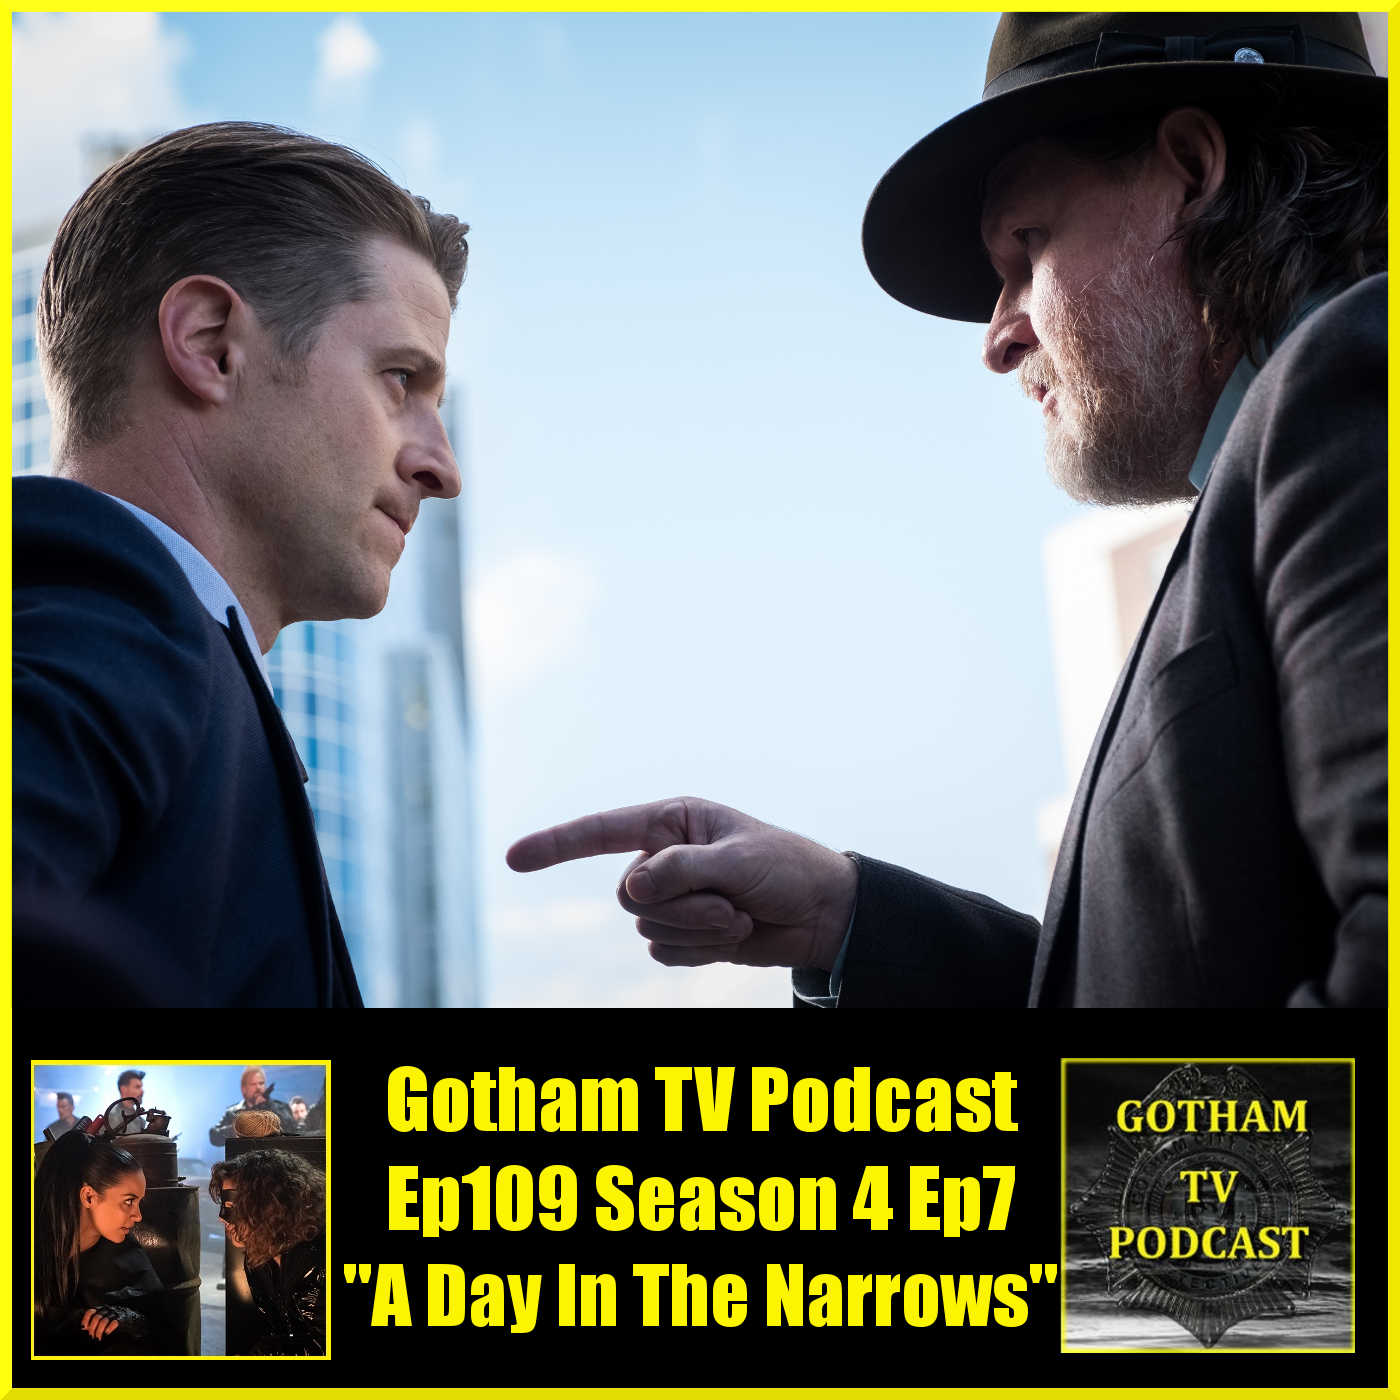 Our Most Recent Episode of Gotham TV Podcast